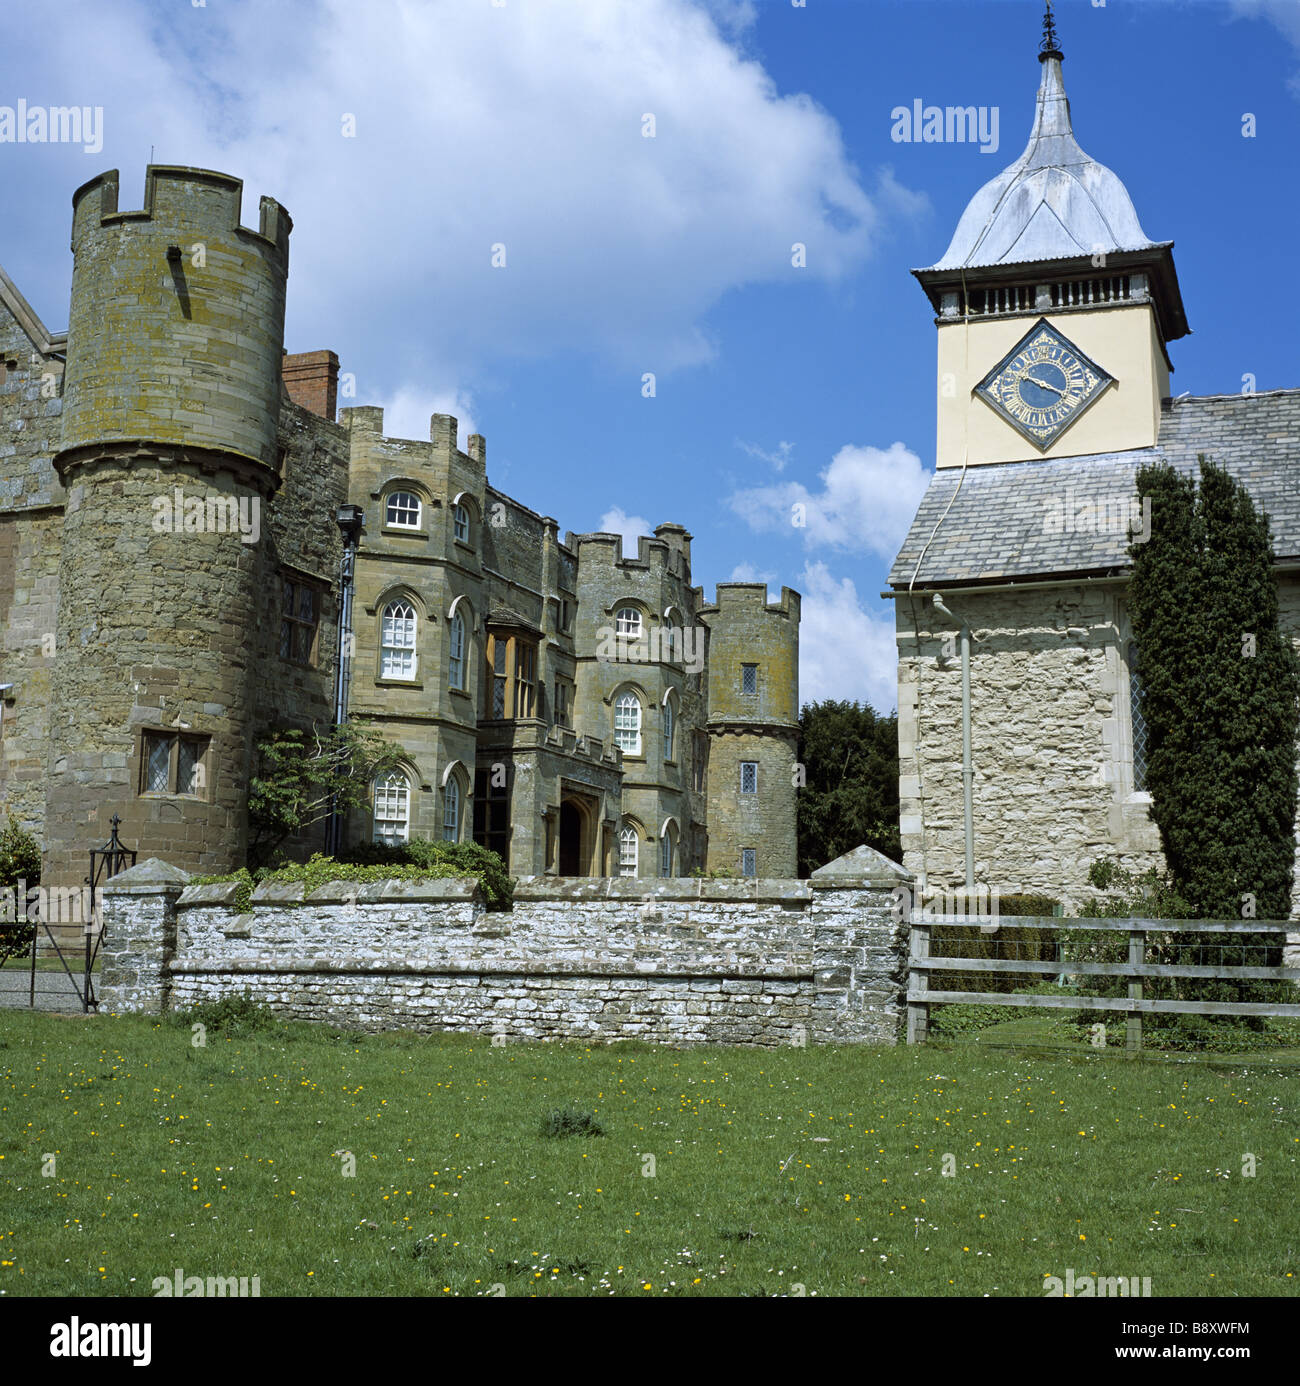 Croft Castle - Stock Image